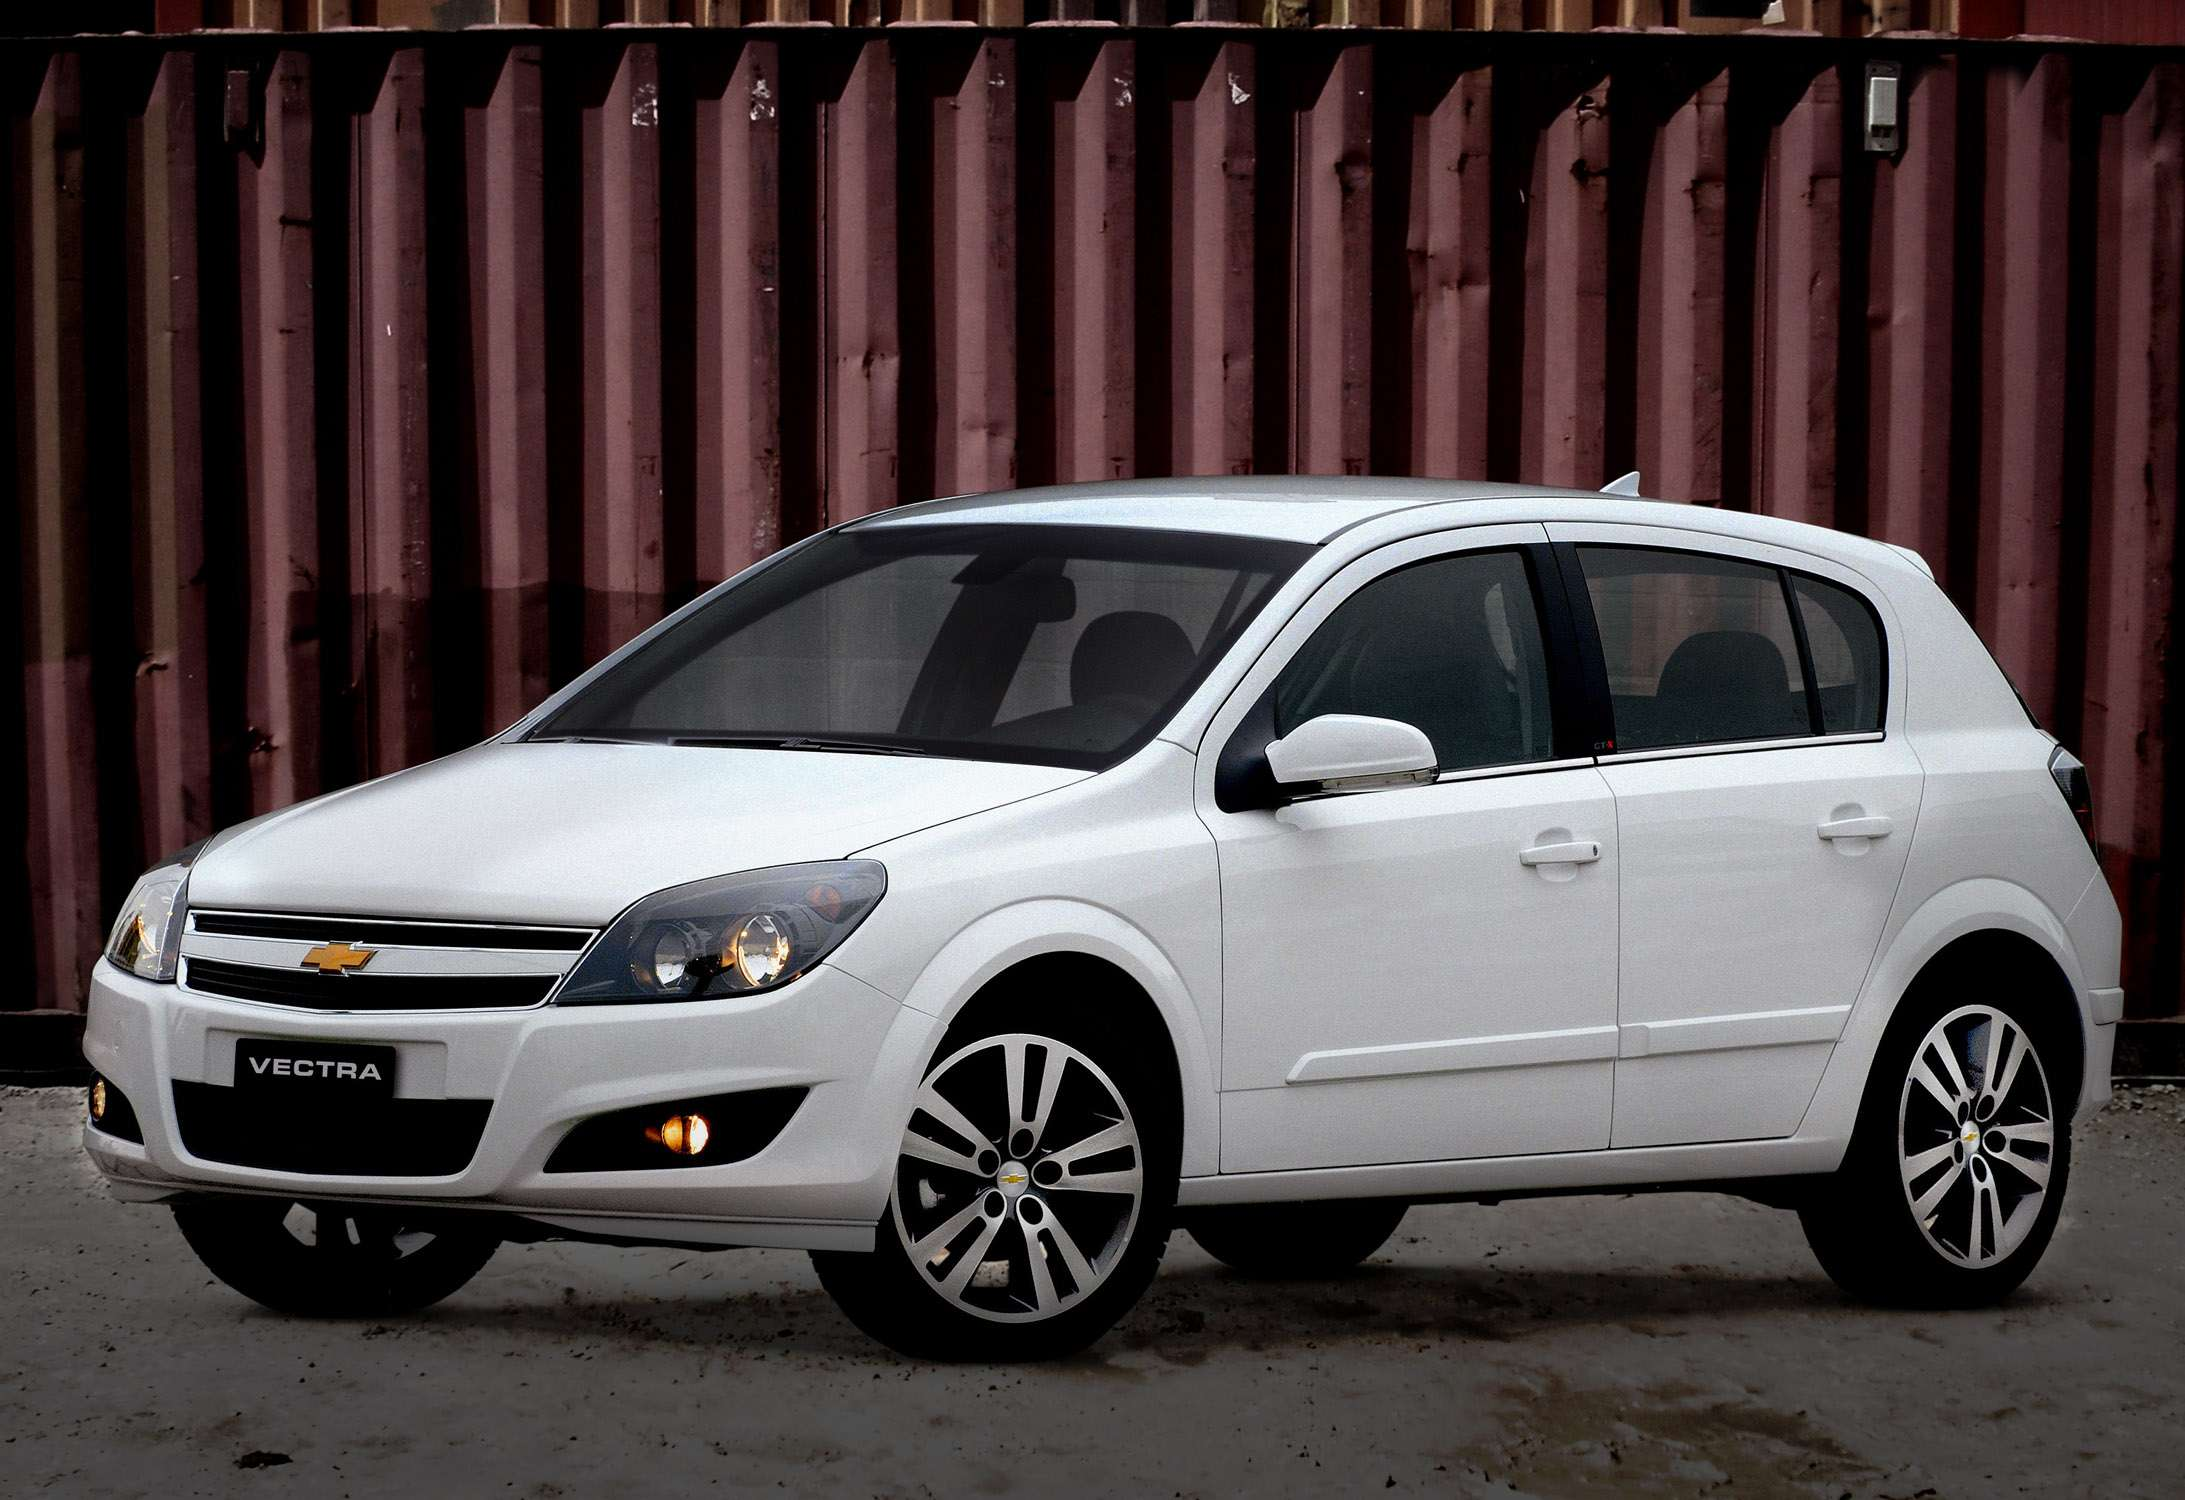 Chevrolet Vectra GT 2010 01 – ALL THE CARS